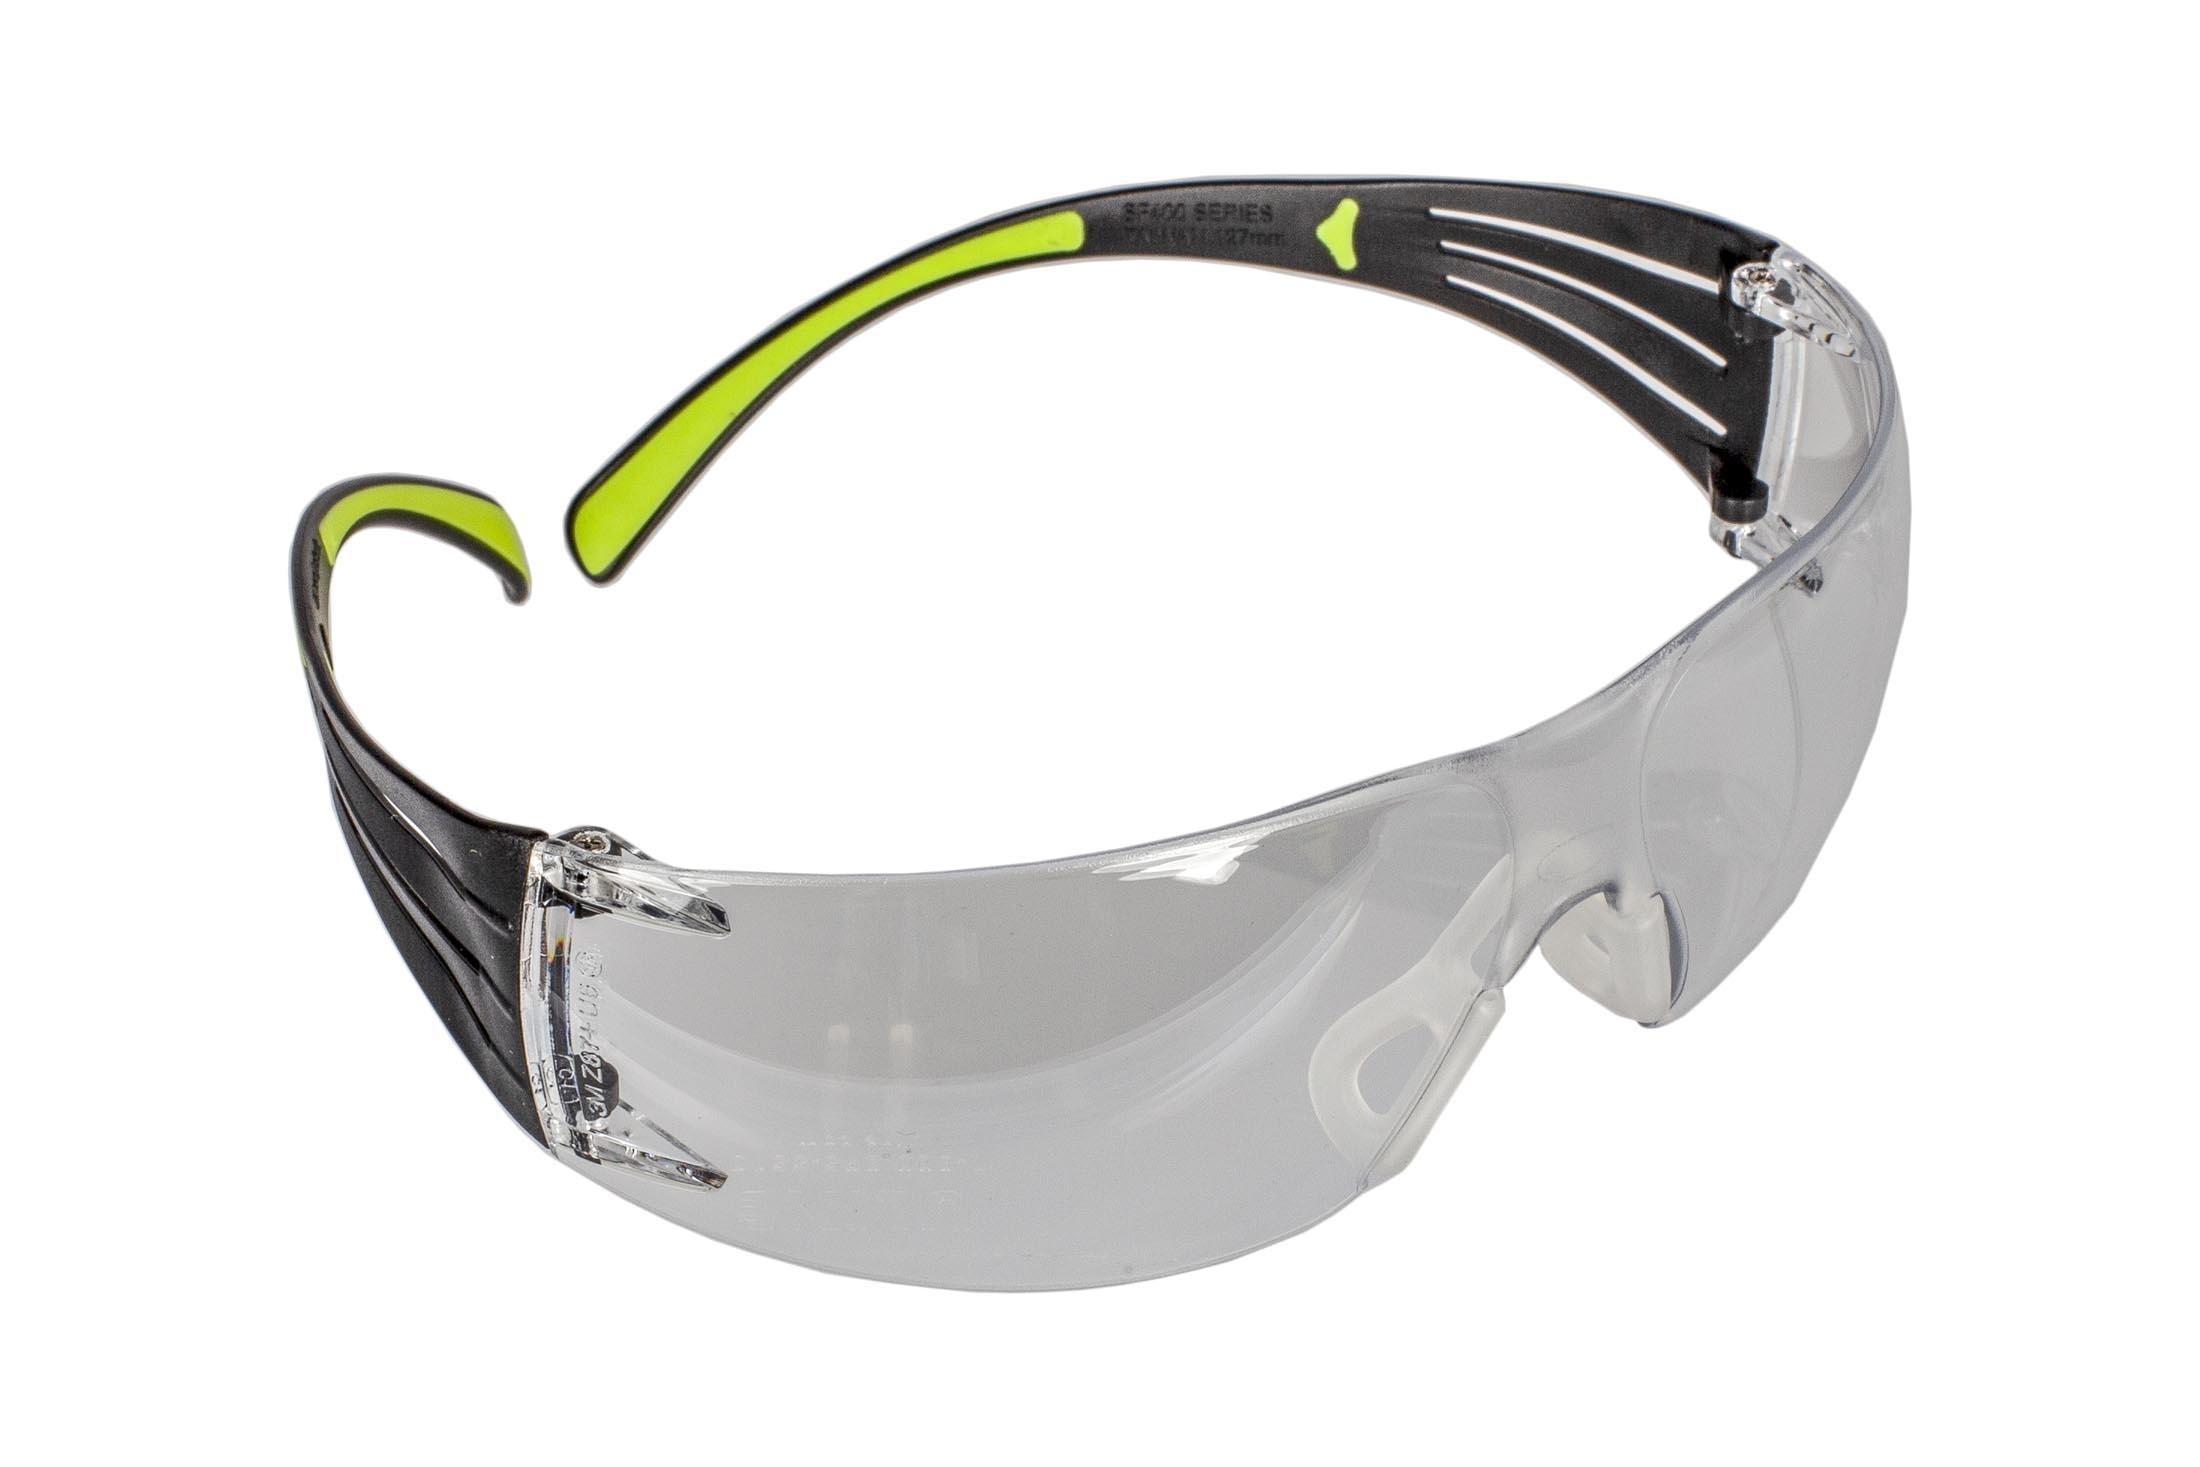 The Peltor Sport SecureFit 400 shooting glasses feature clear polorized lenses